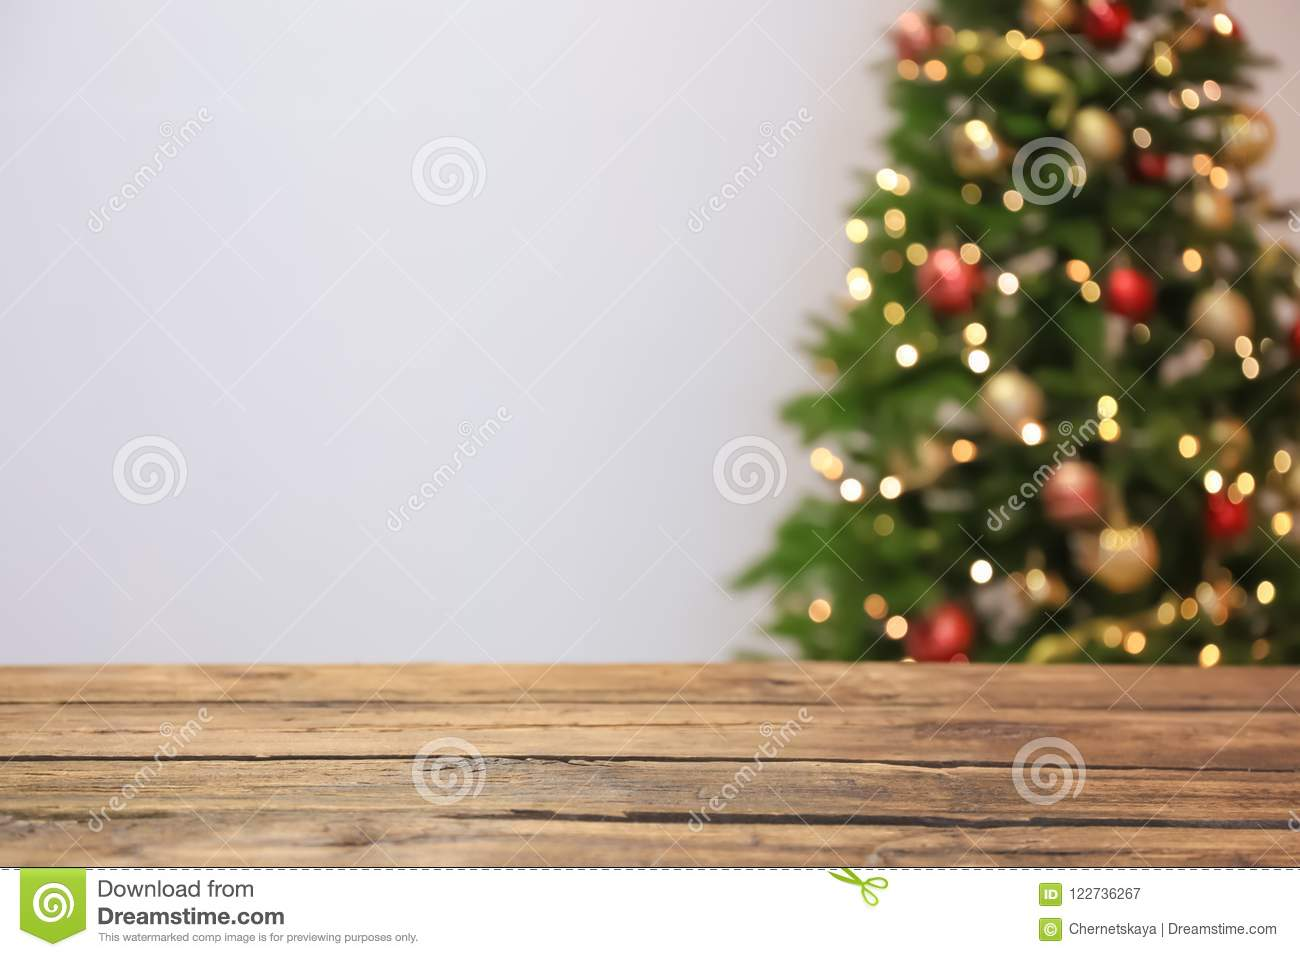 Wooden table and blurred Christmas tree